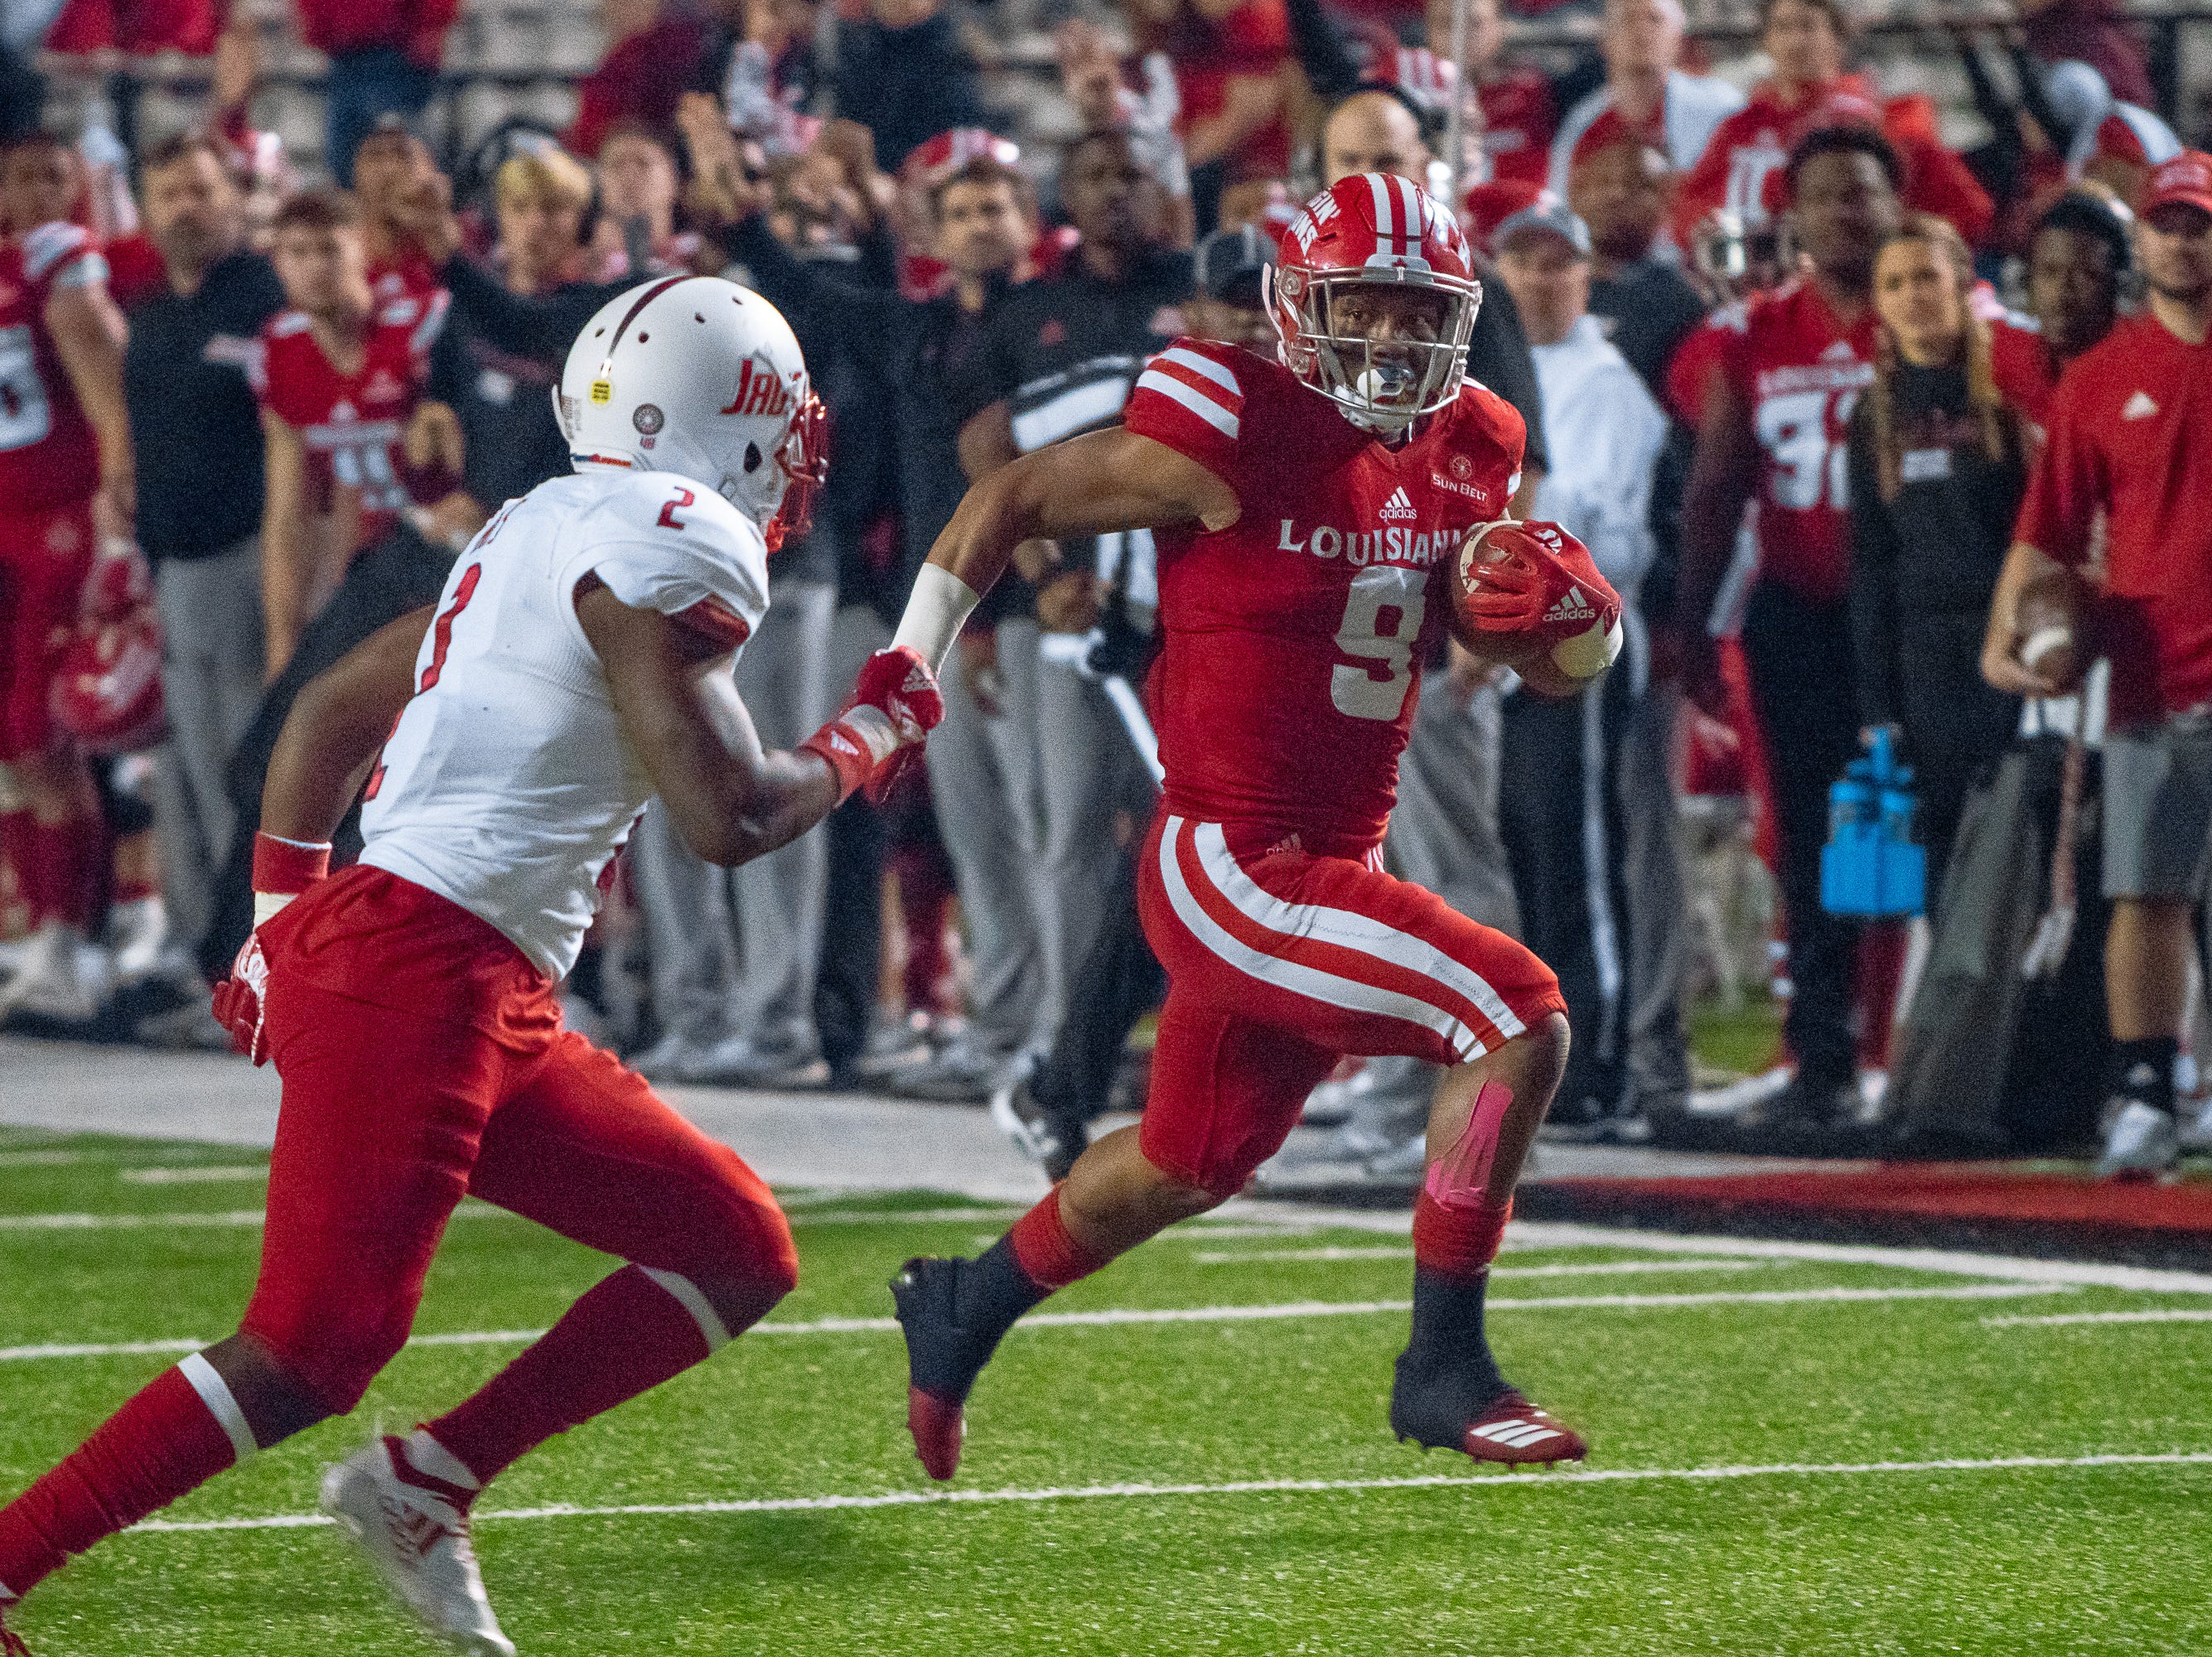 UL's Trey Ragas watches his defender while running the ball down the field as the Ragin' Cajuns play against the South Alabama Jaguars at Cajun Field on November 17, 2018.